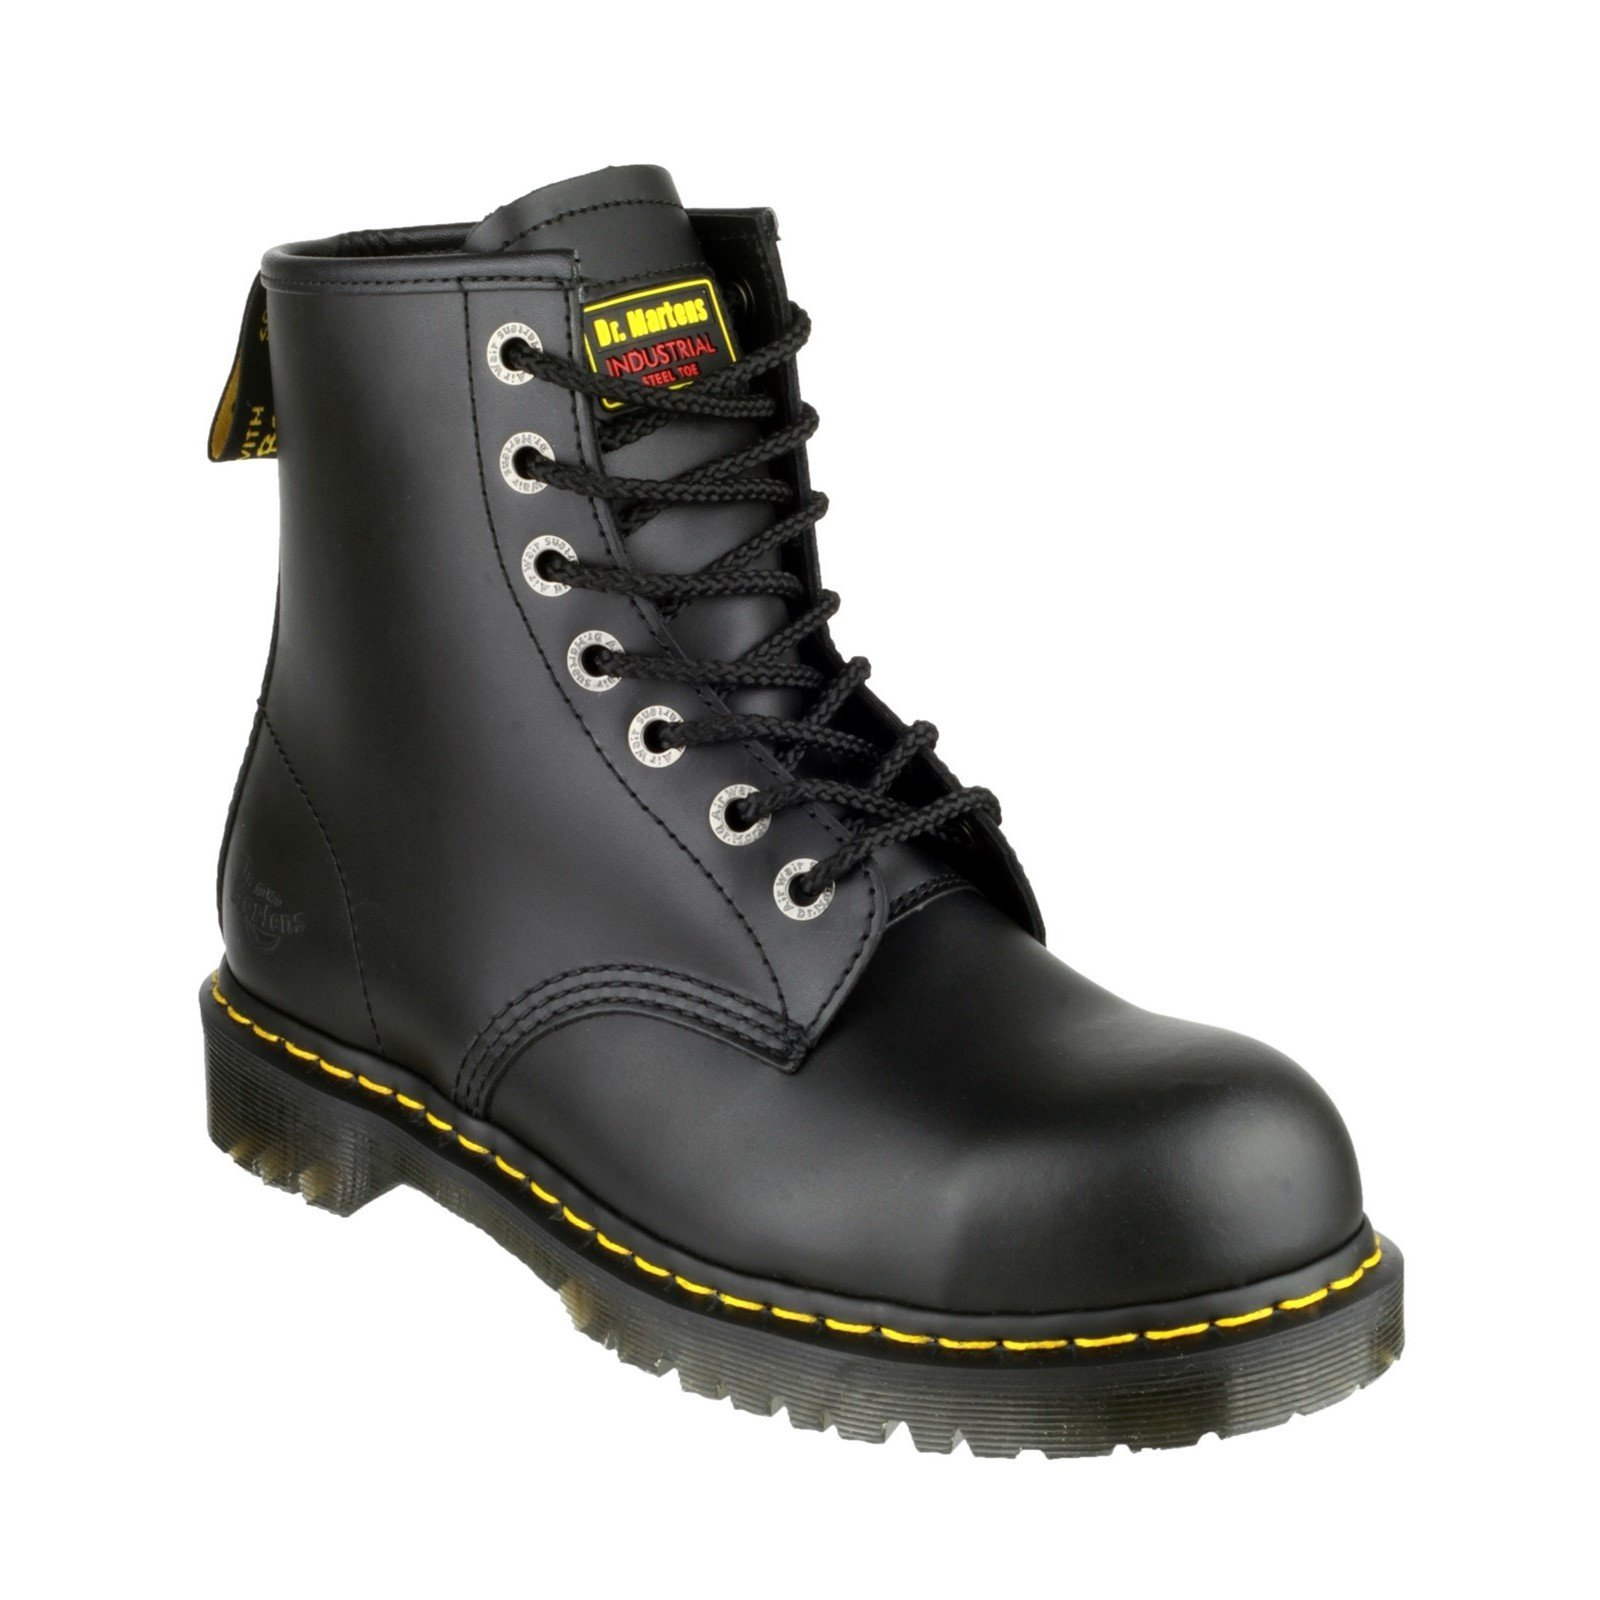 Dr Martens Unisex Icon Lace up Safety Boot Black 19498 - Black 10